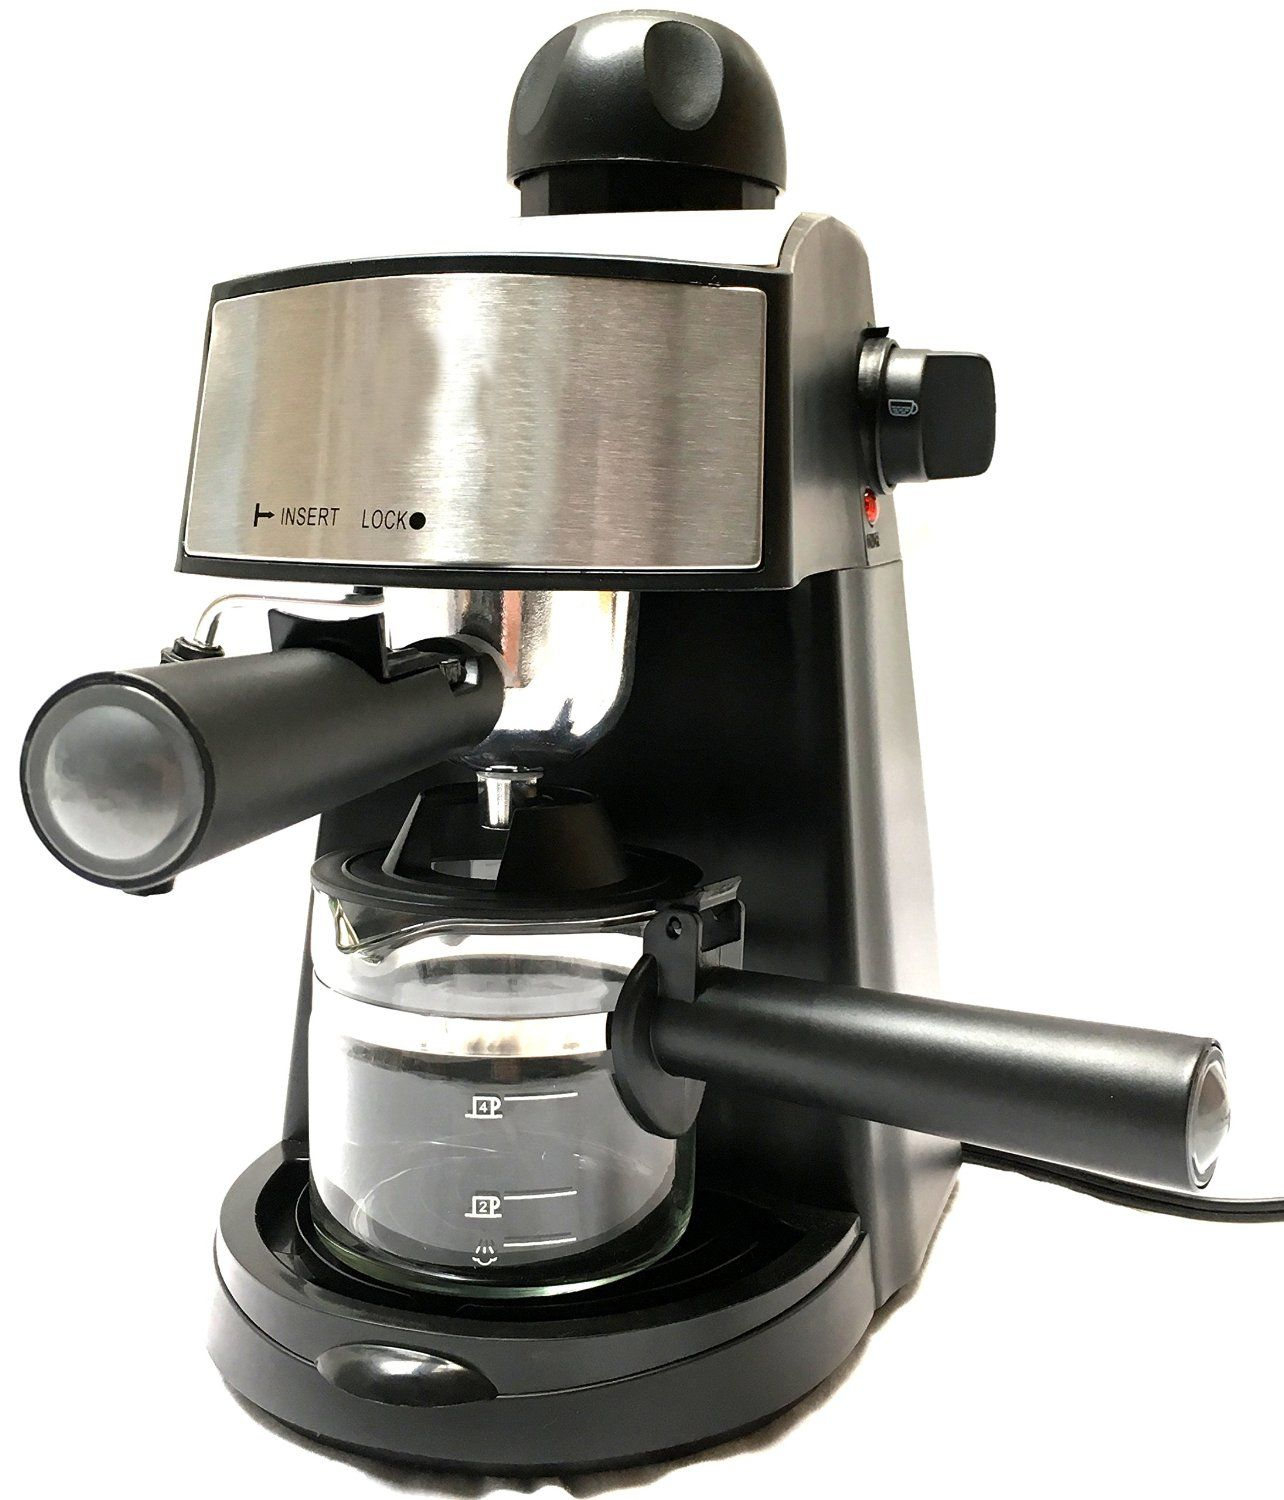 Best Cappuccino Maker Guide & Reviews Best espresso